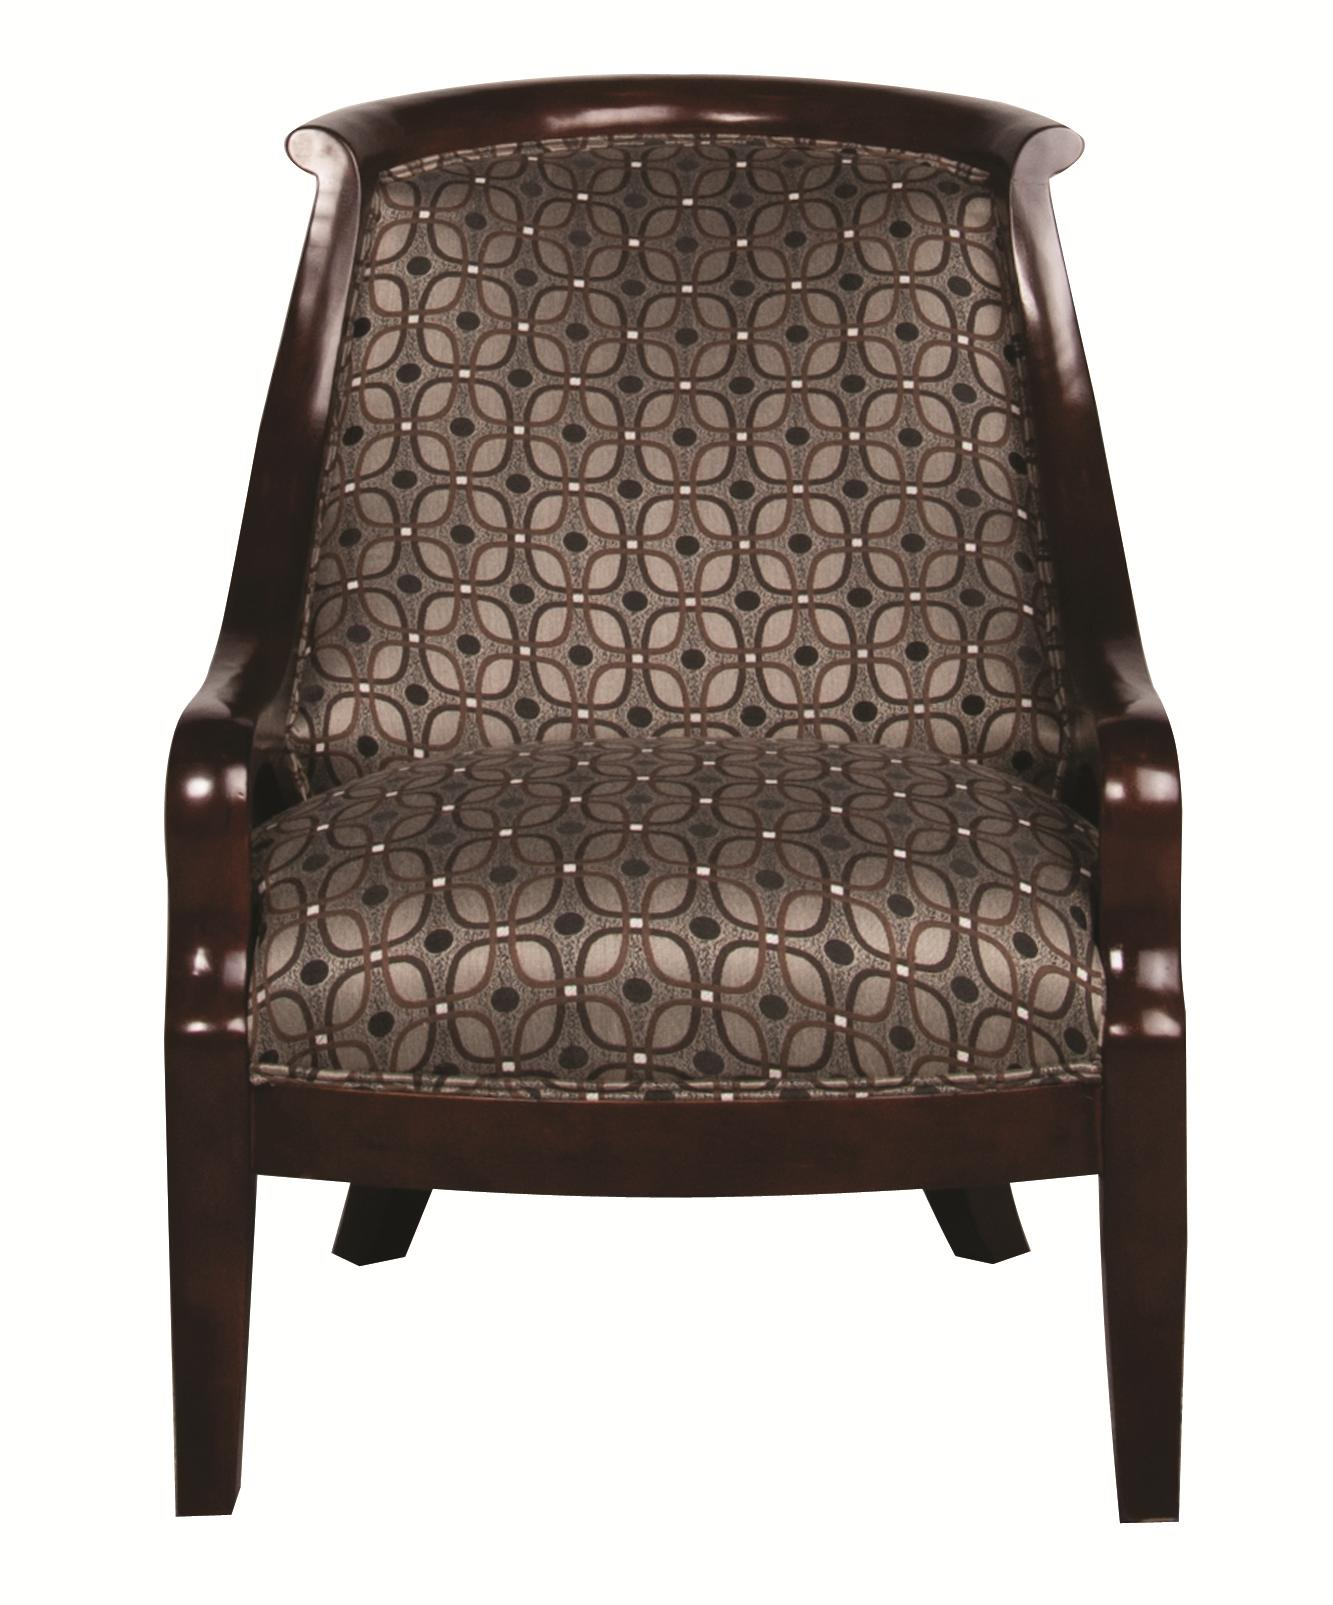 Morris Home Furnishings Andrew Andrew Accent Chair - Item Number: 110140174